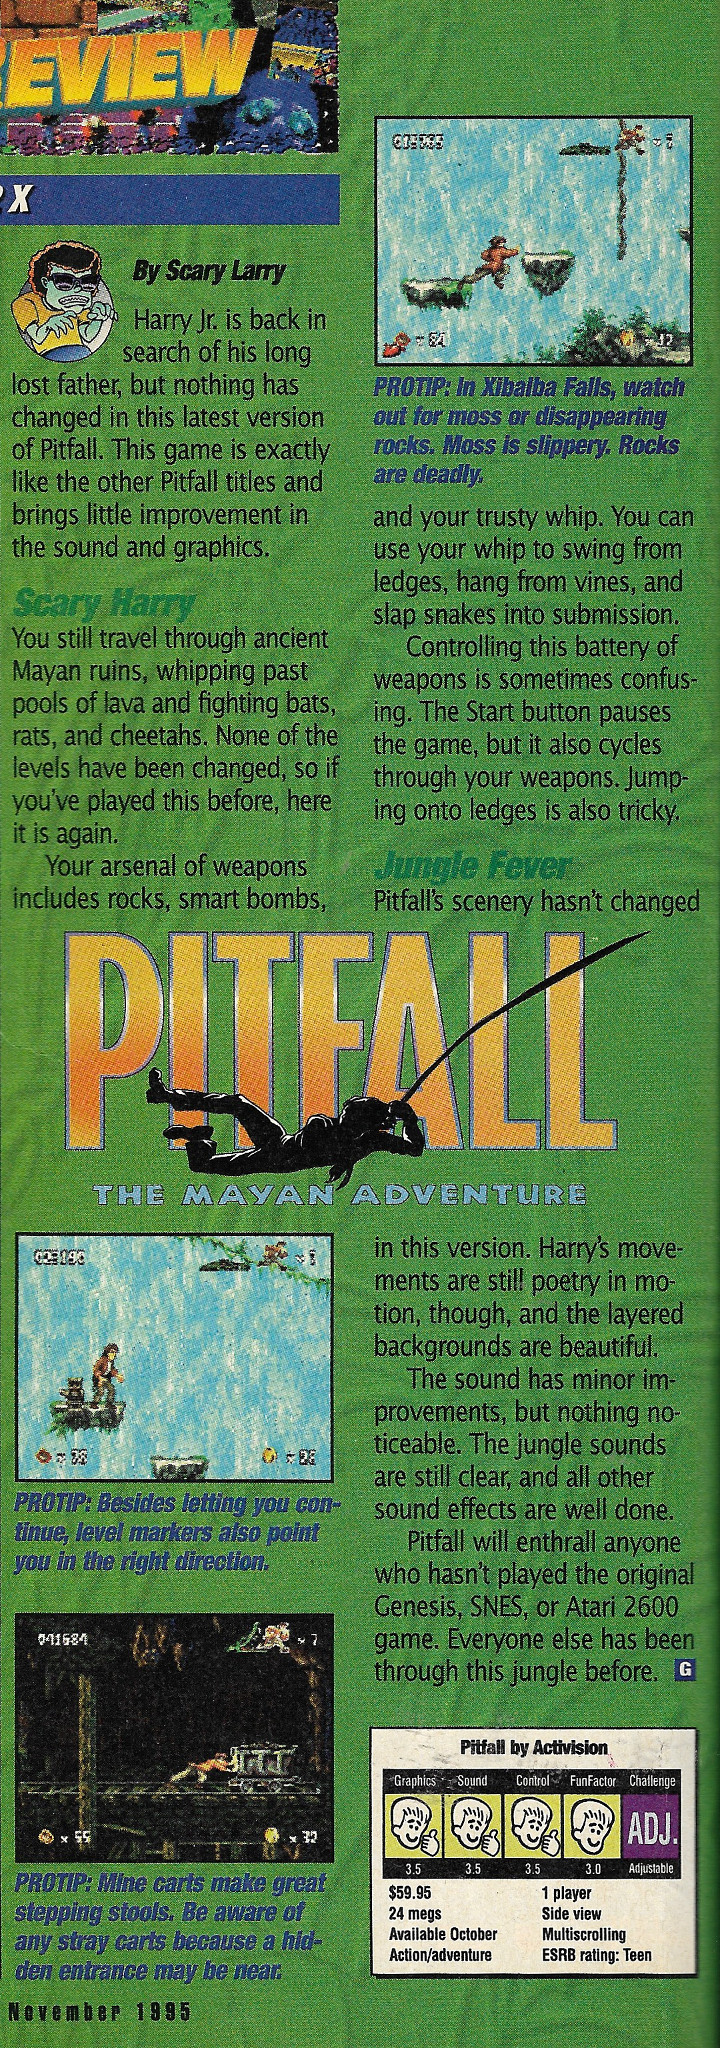 Pitfall Review